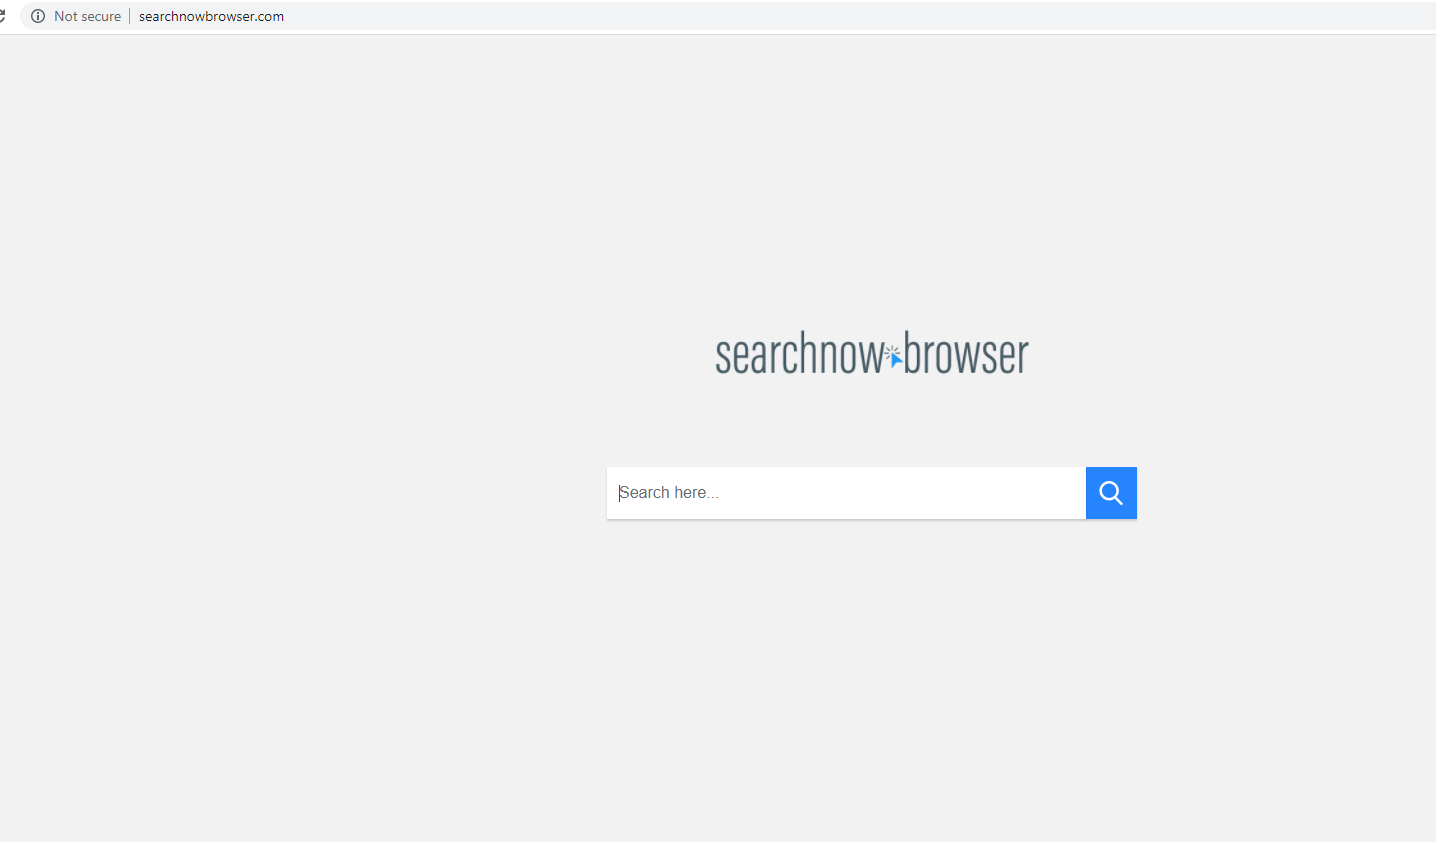 Searchnowbrowser